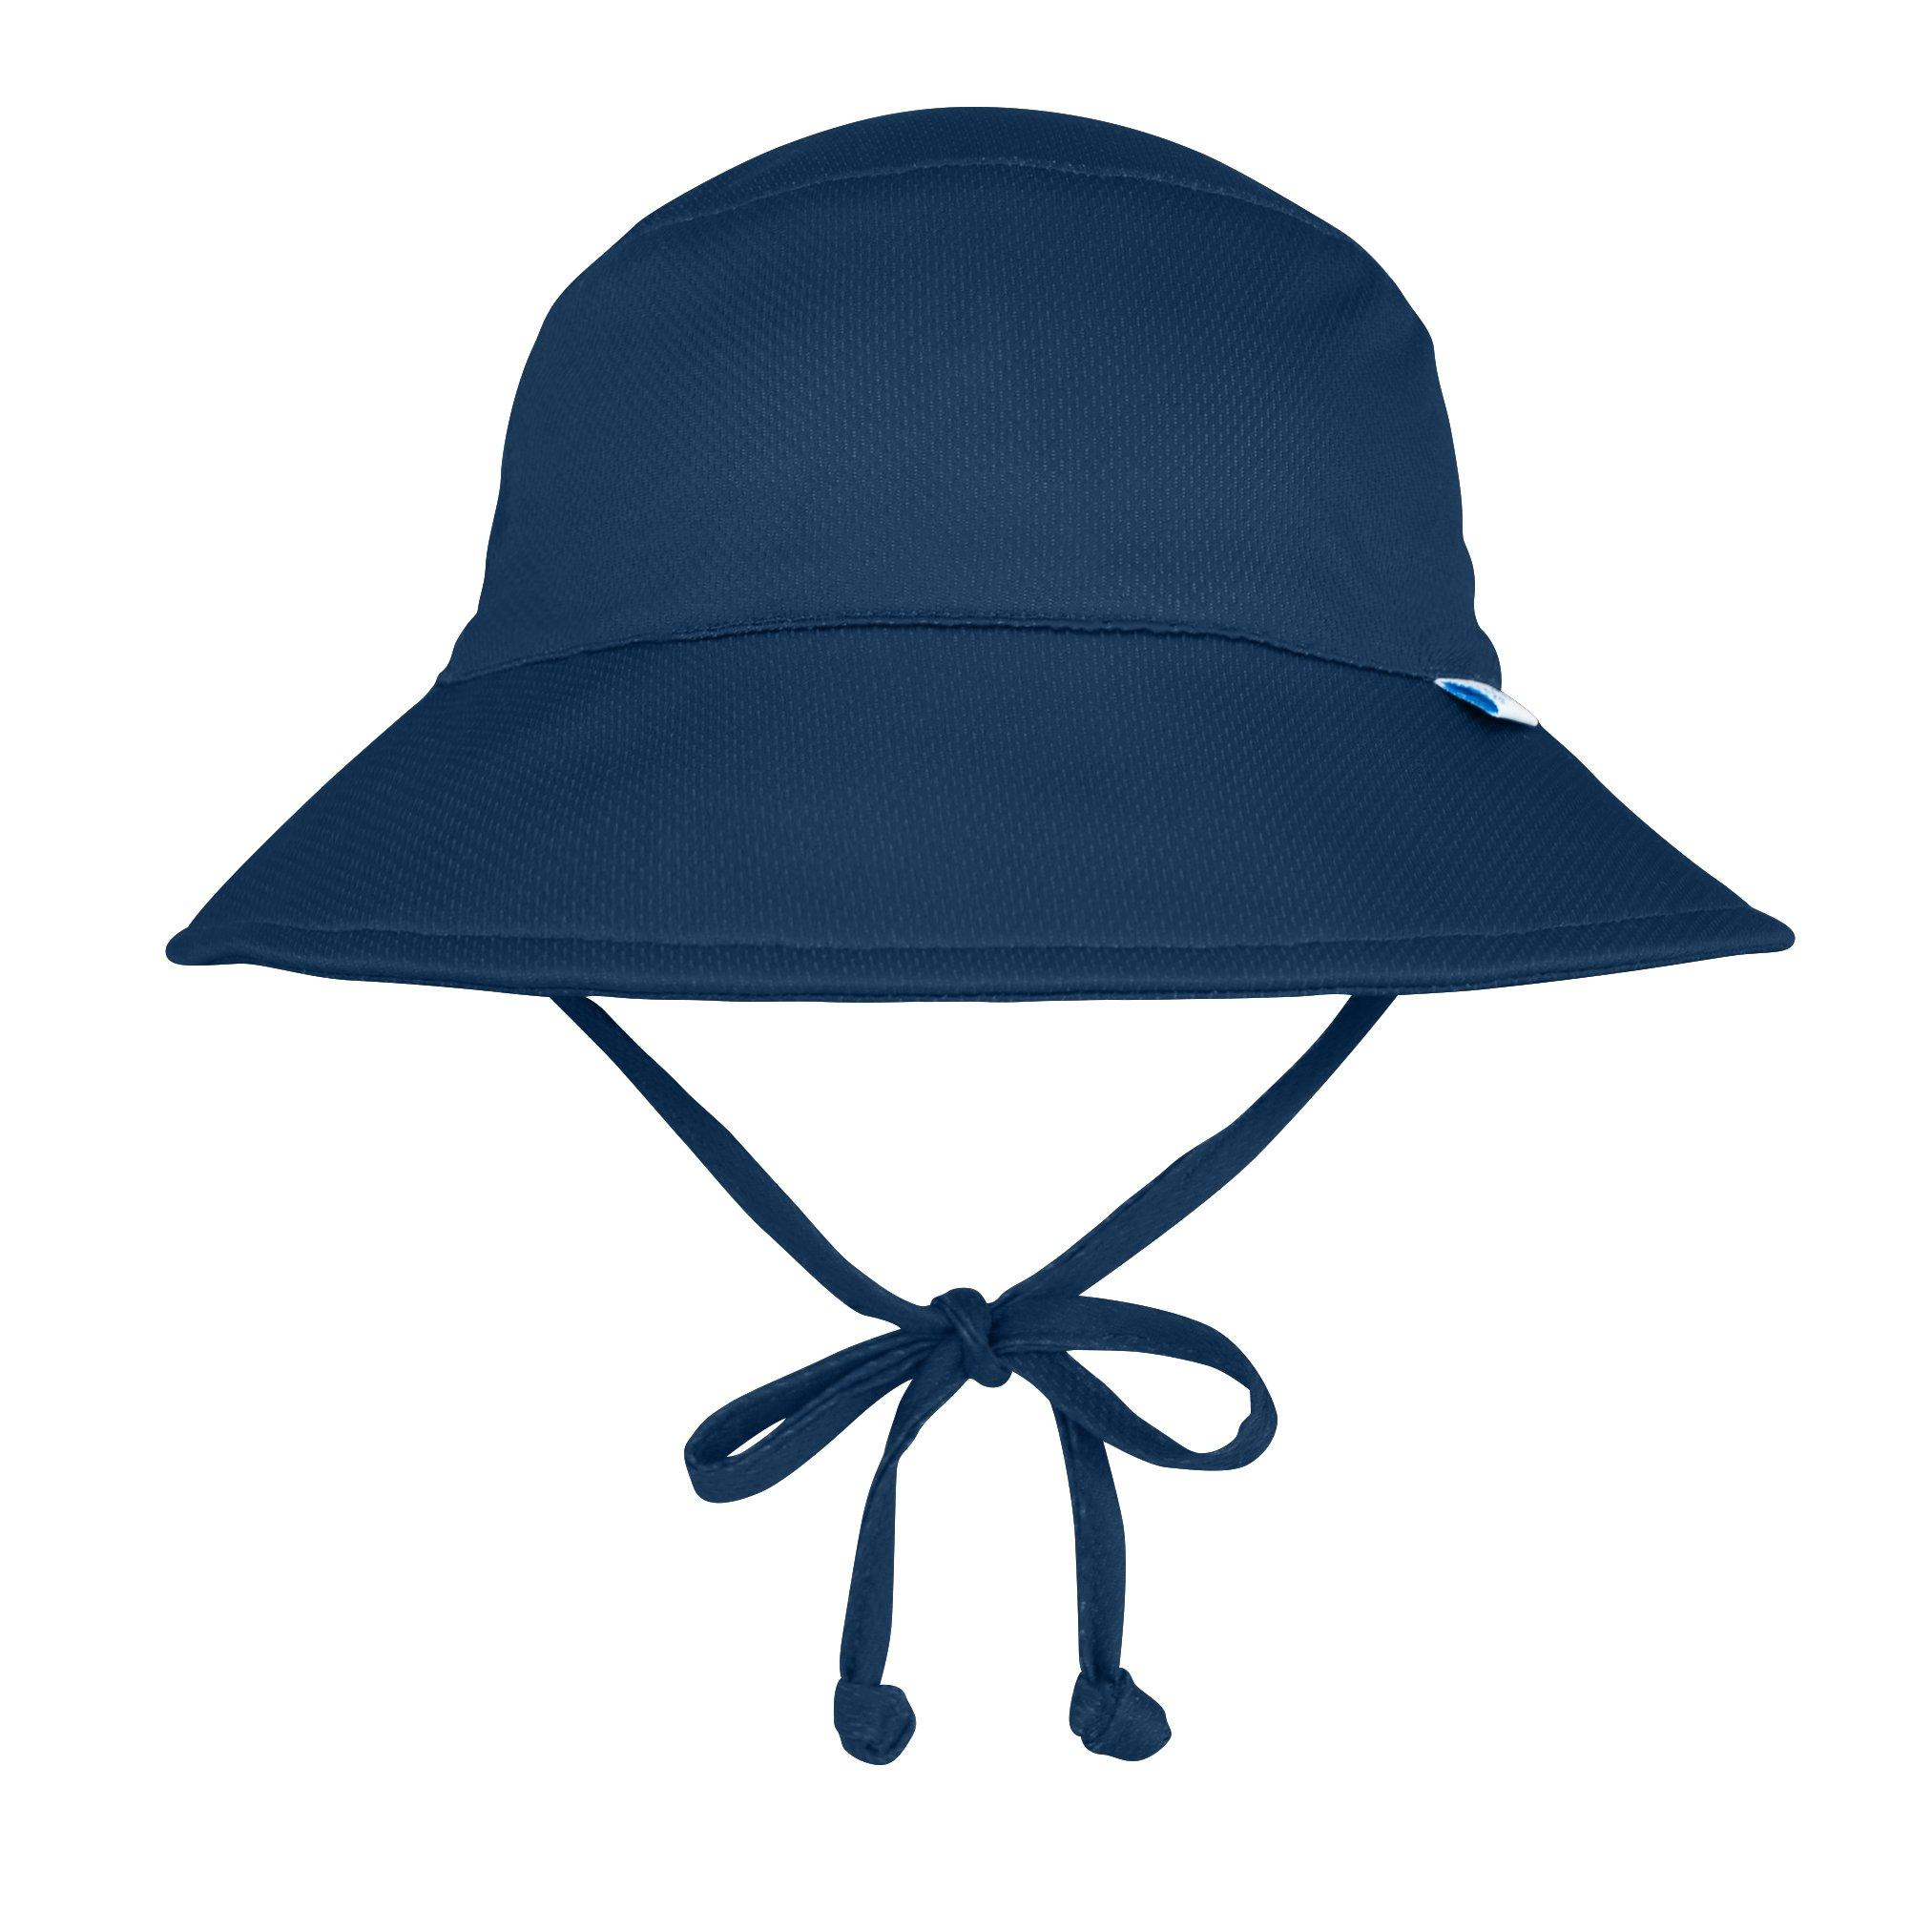 i play. Kids' Toddler Boys Breatheasy Bucket Sun Protection Hat, Navy, 2T/4T